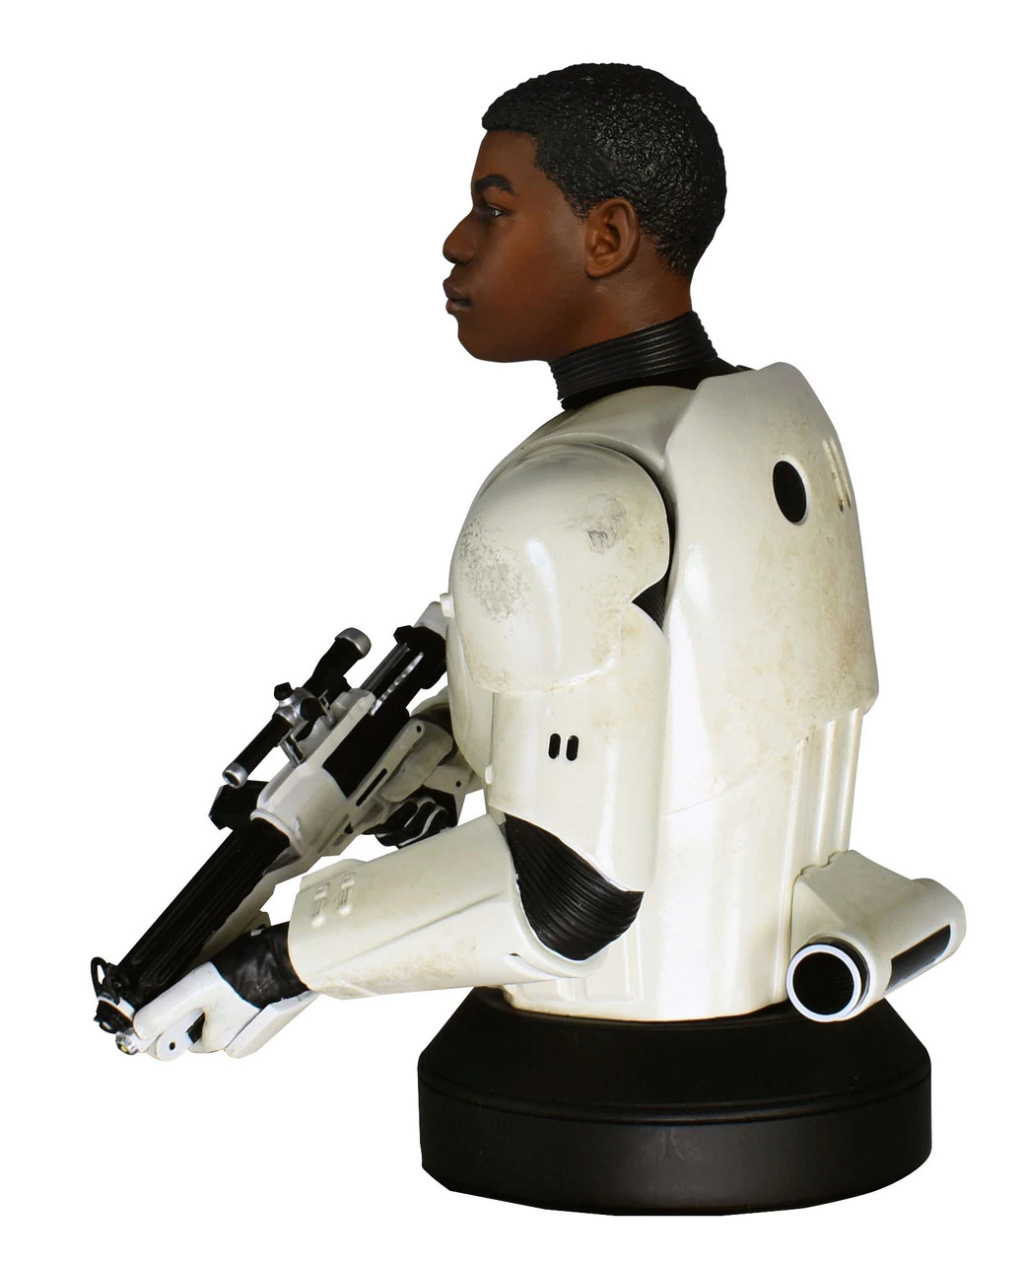 Finn (FN-2187) Mini Bust - The Force Awakens - Gentle Giant Finn_m16